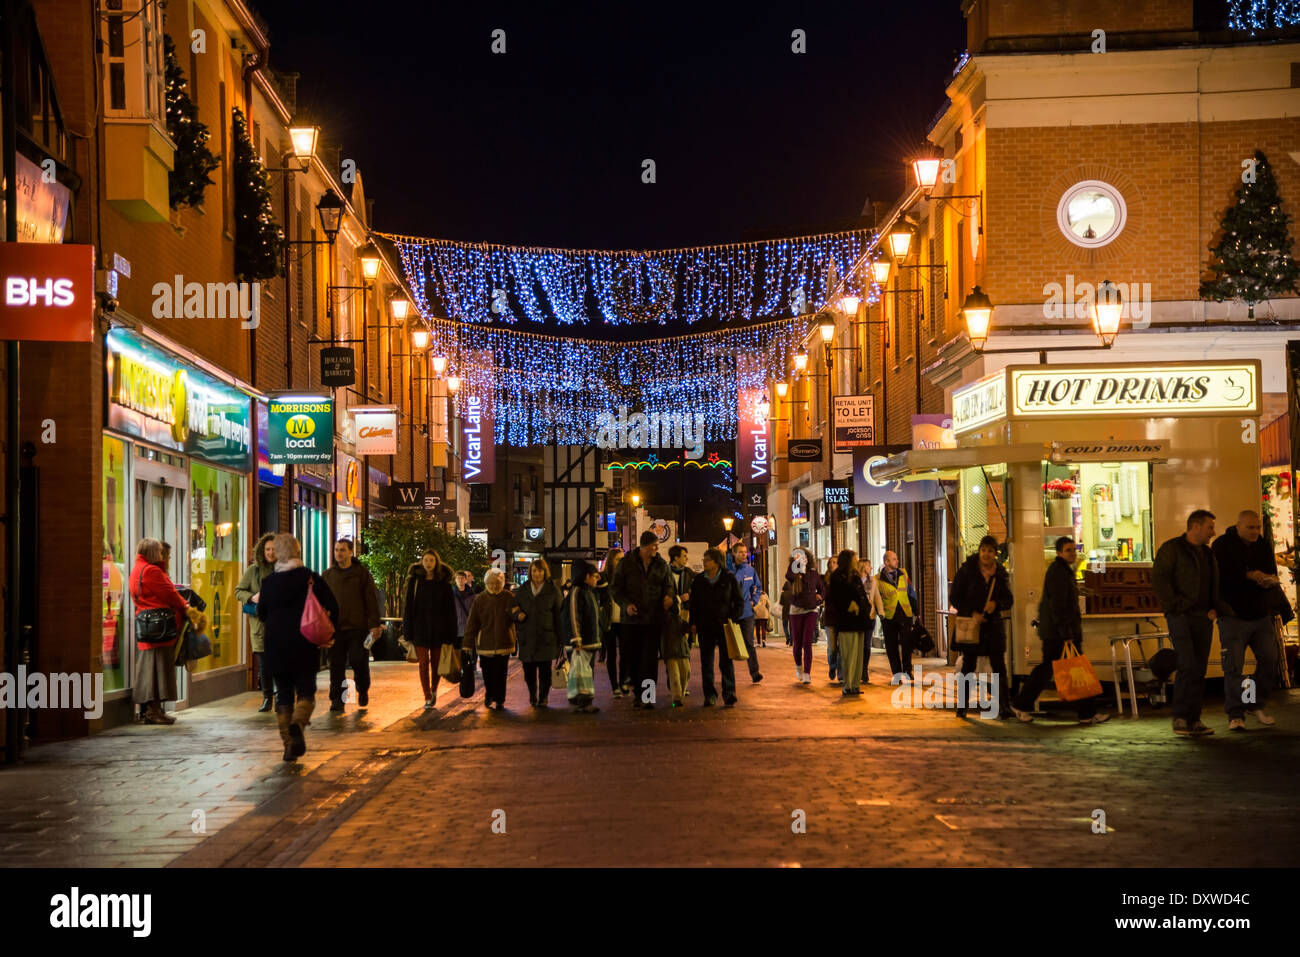 Christmas shoppers out late at night in Chesterfield town lit up with decorations and lights  Derbyshire - Stock Image